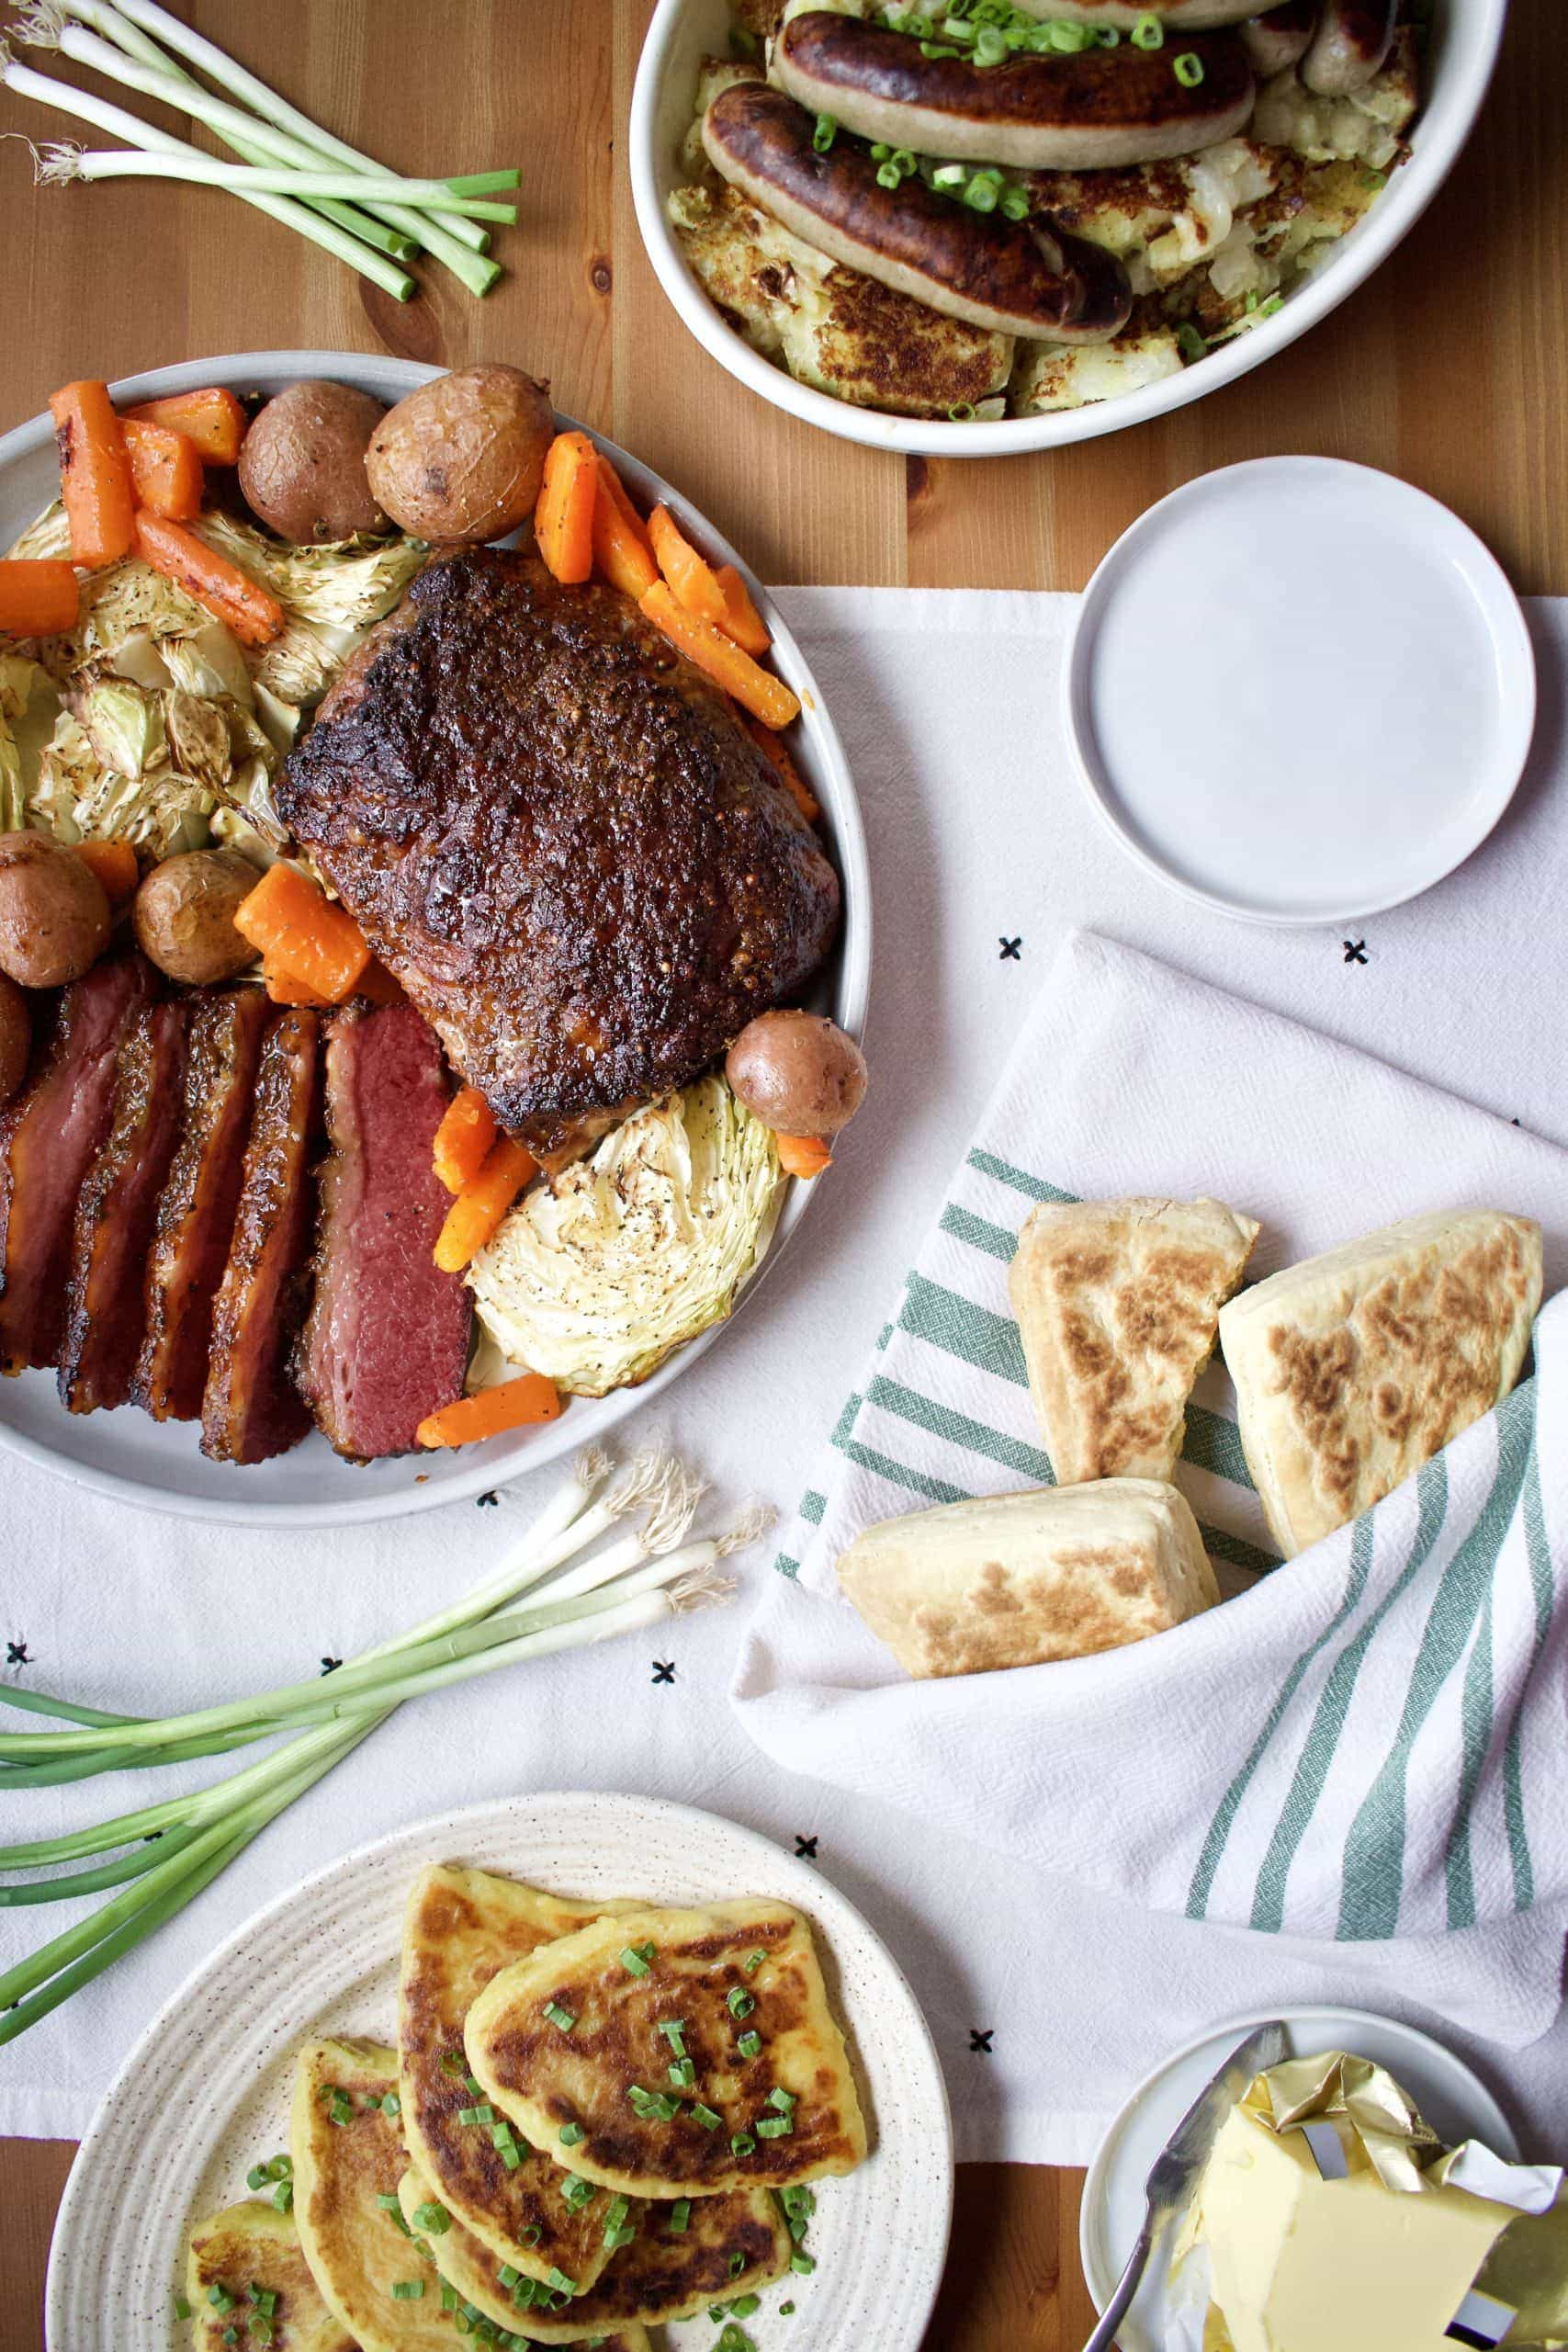 a classic Irish-American feast laid out on a table.